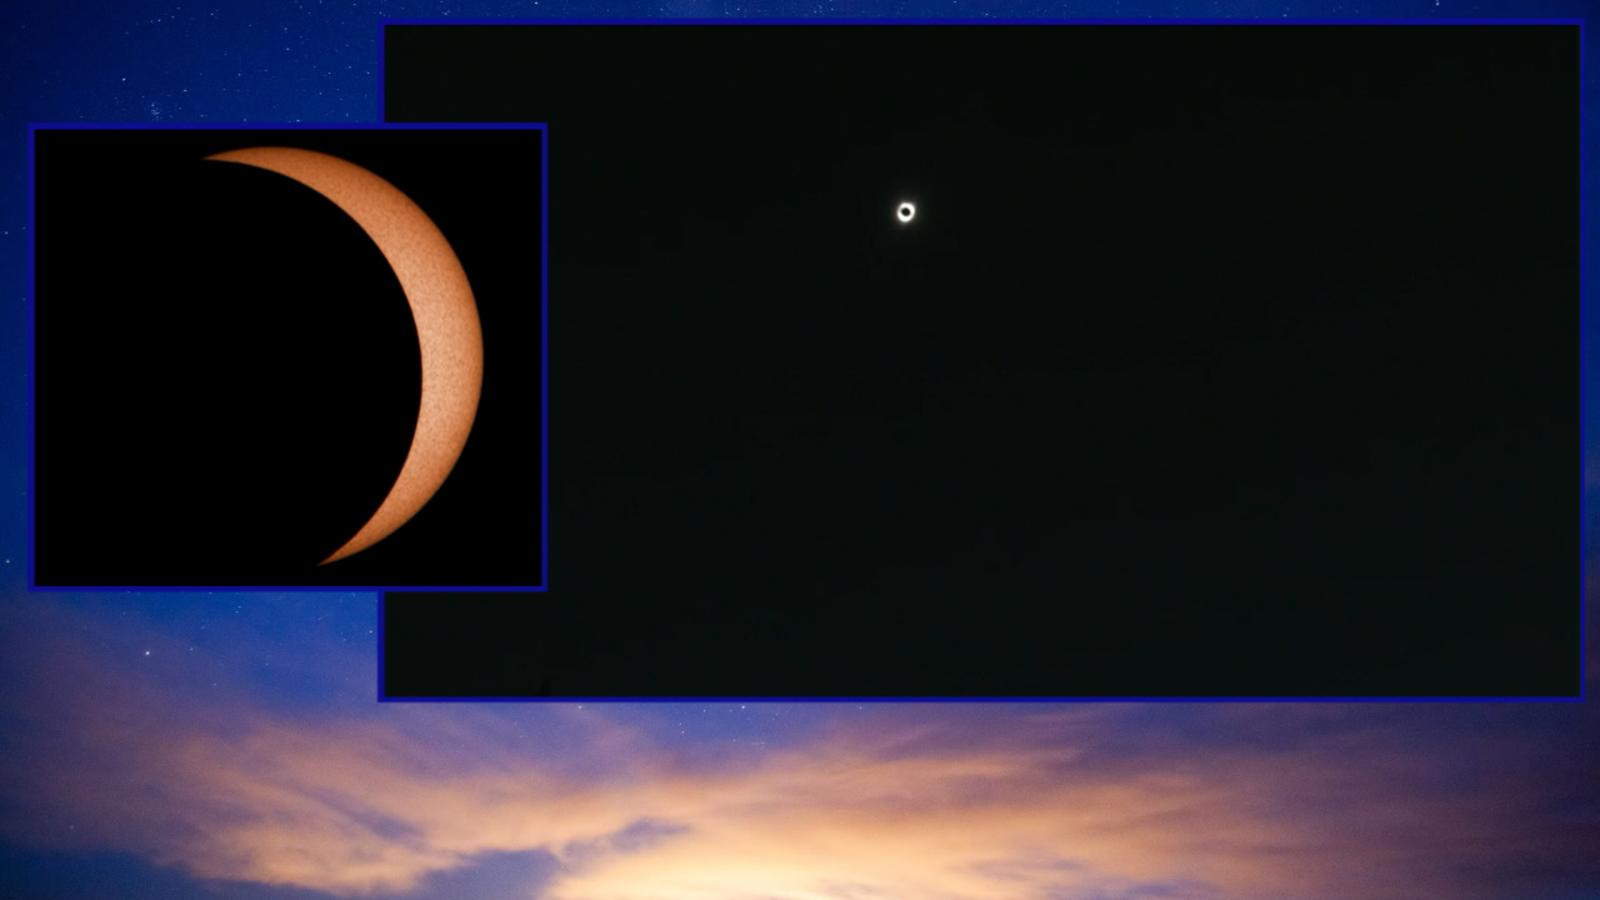 VIDEO: Viewing the eclipse from Idaho Falls, ID